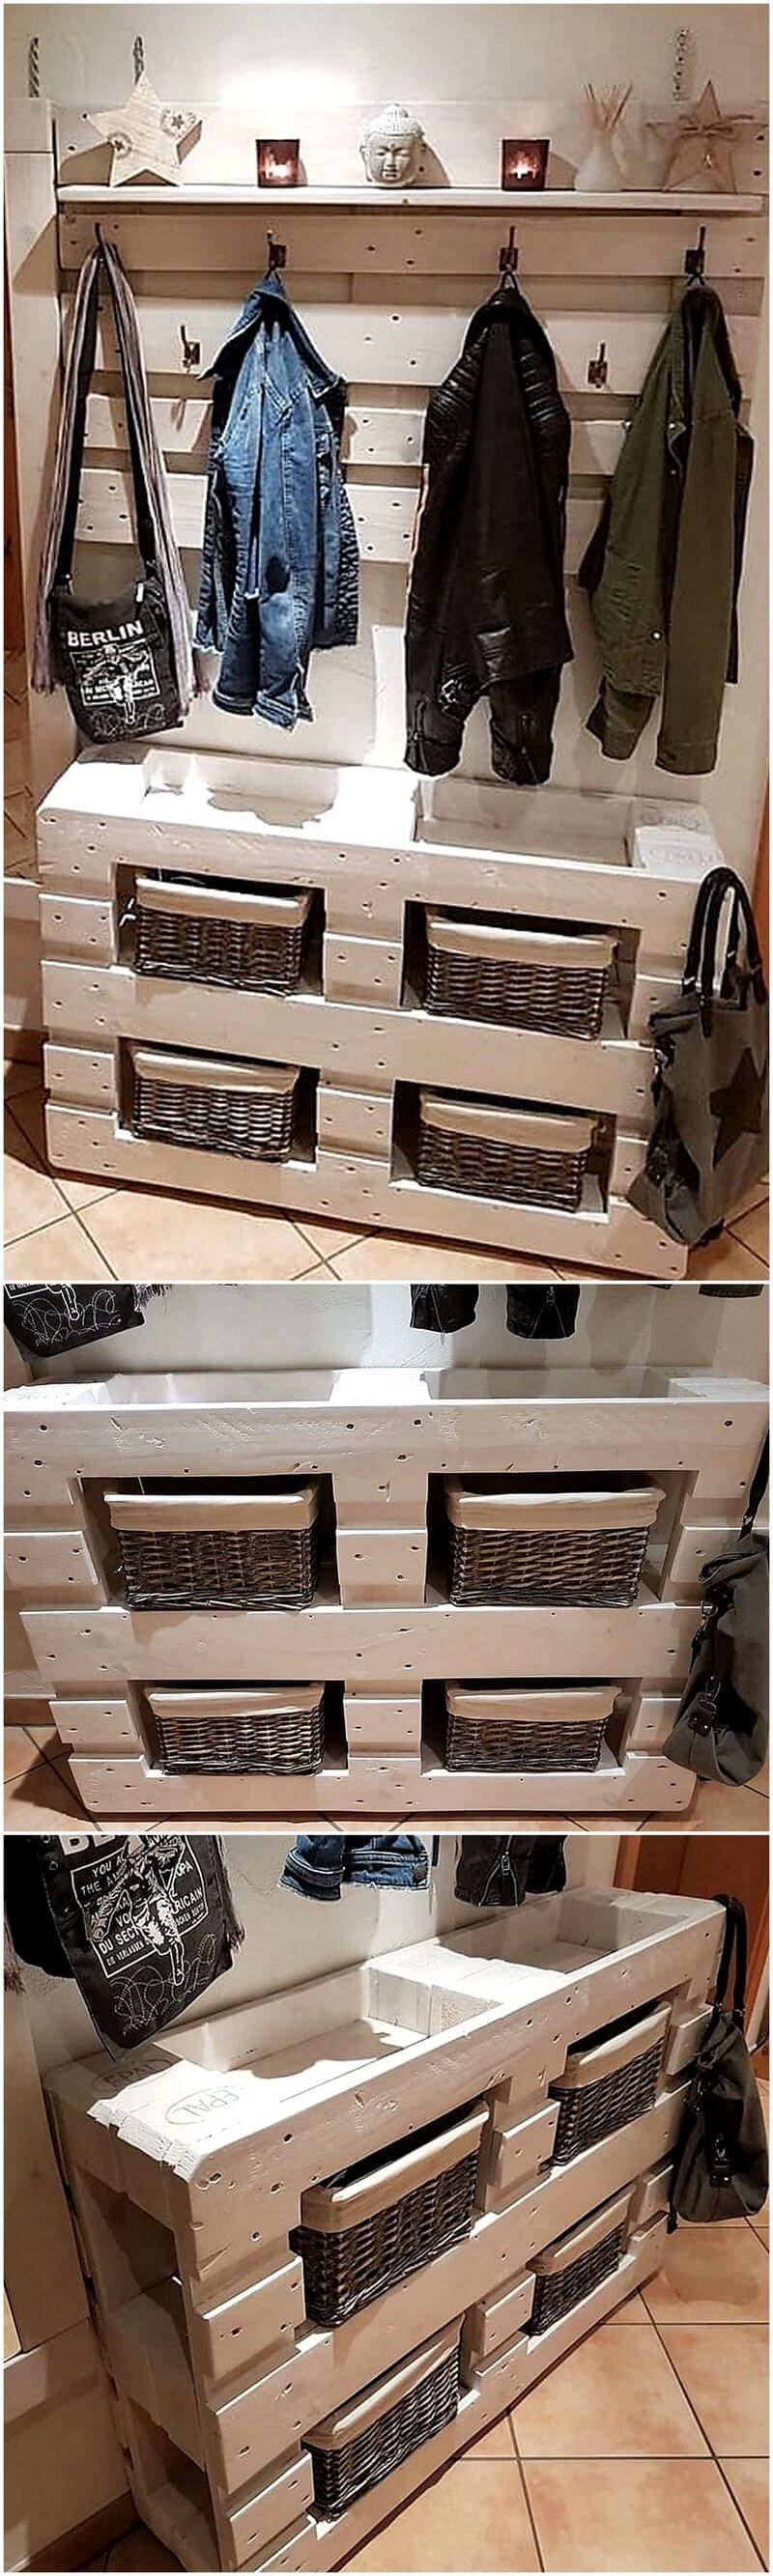 Awesome DIY Ideas to Refurbish Wood Pallet #oldpalletsforcrafting